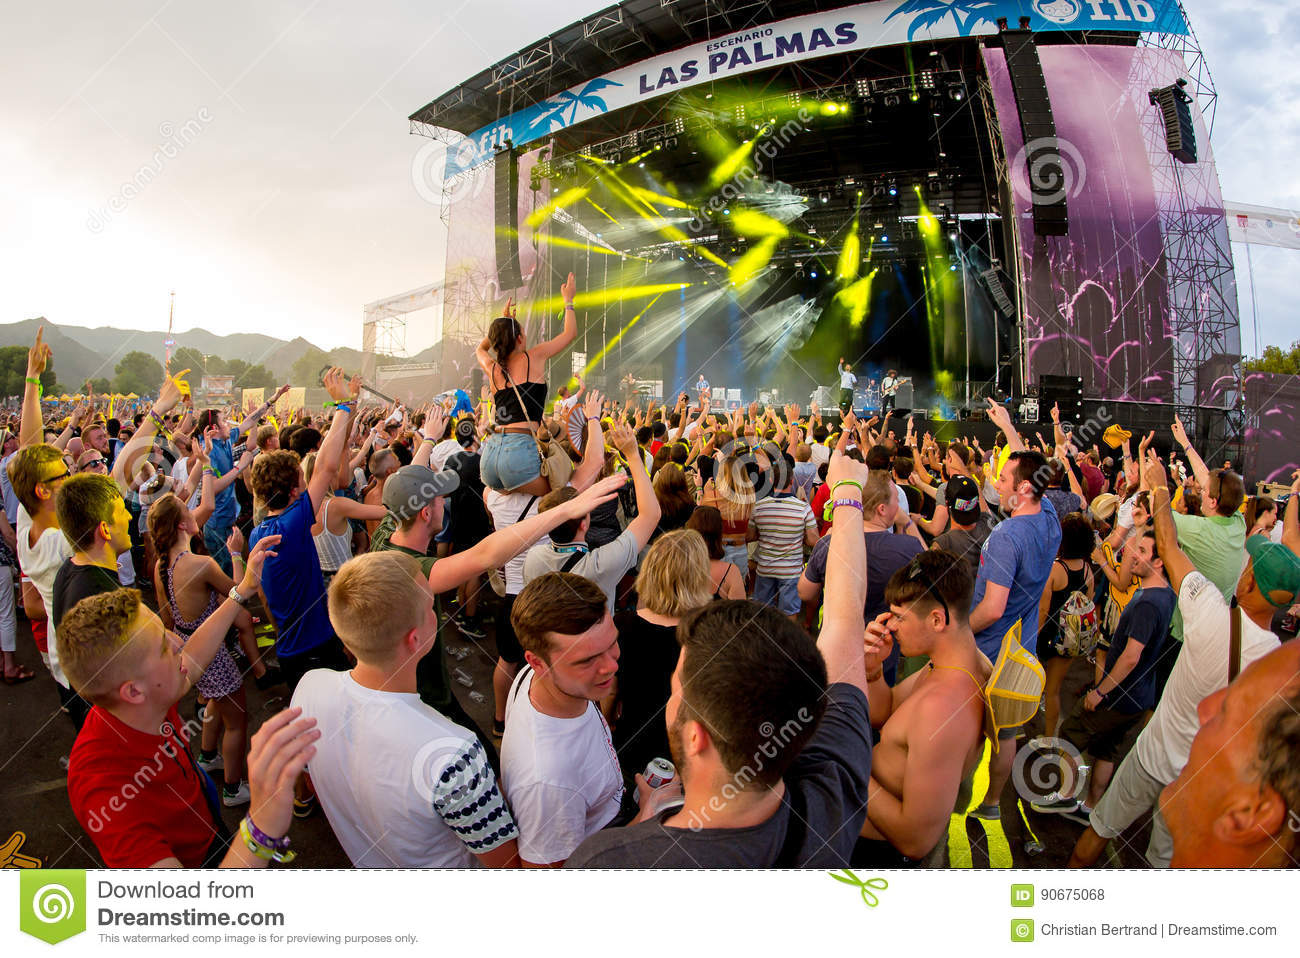 Crowd in a concert at FIB Festival